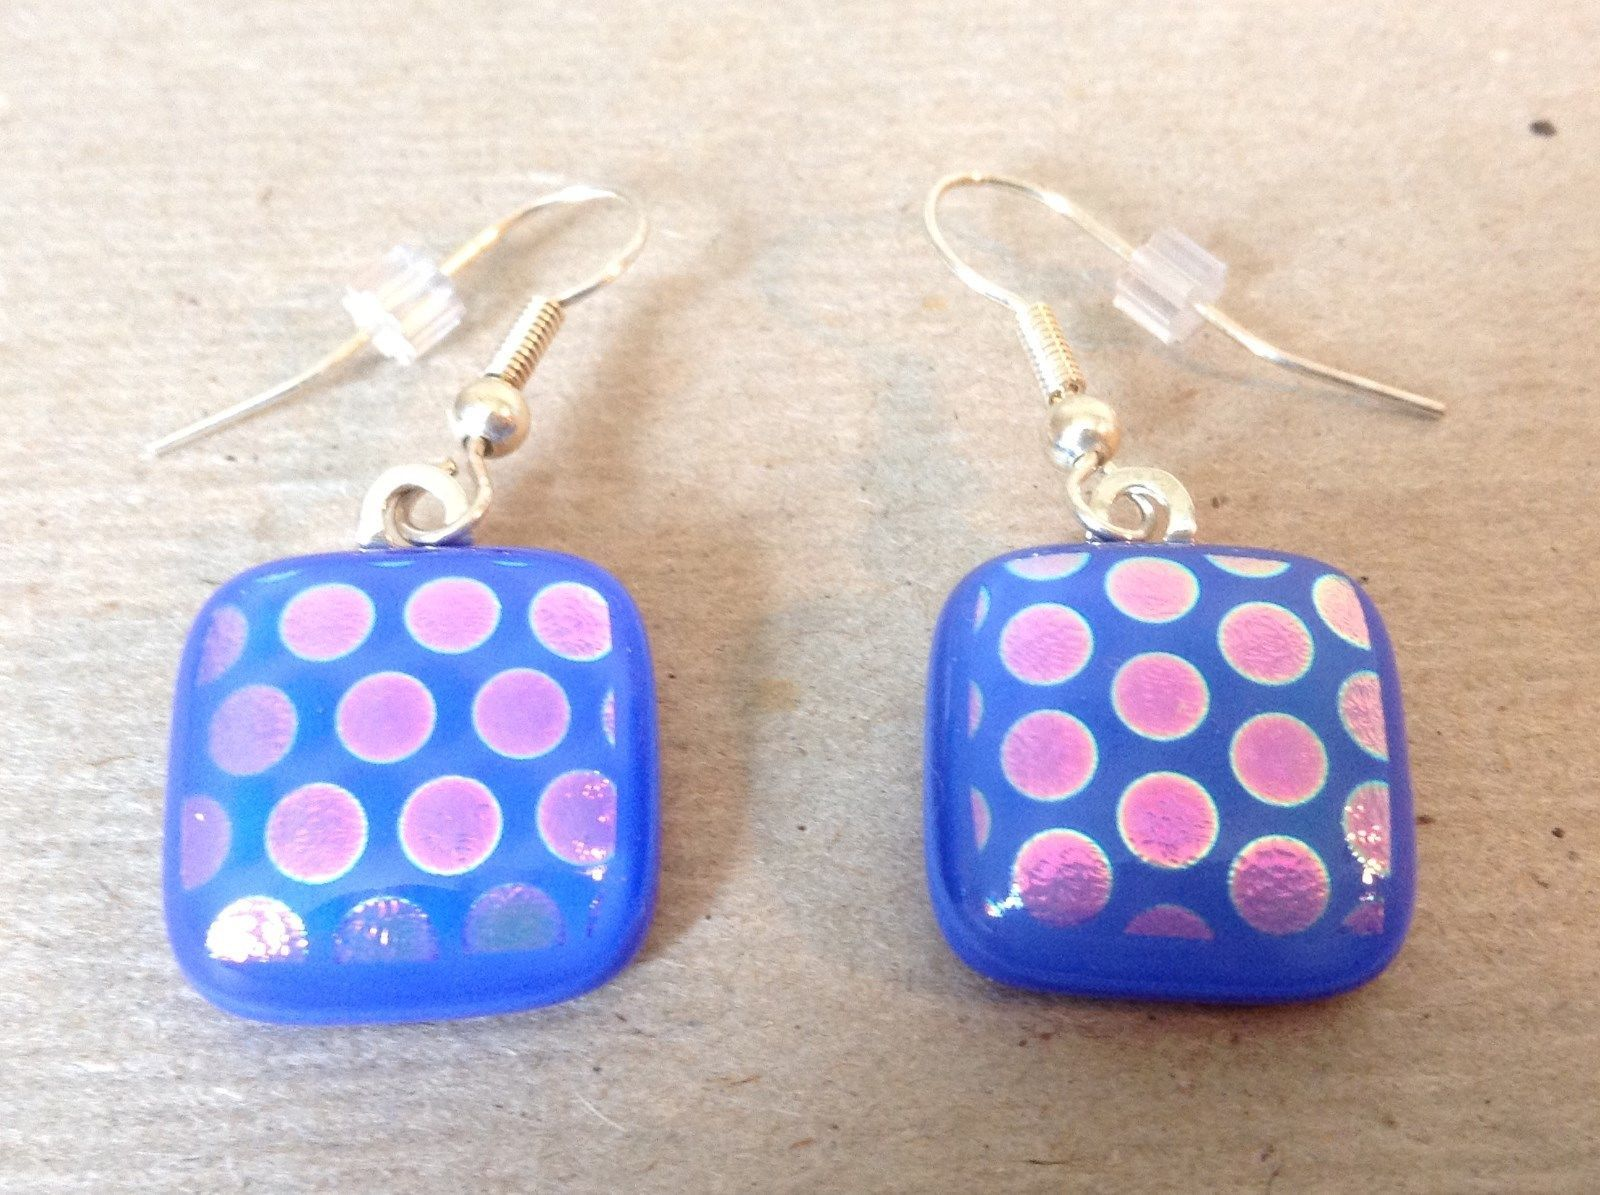 Violet Blue Polka Dot Square Shaped Glass Dangling Earrings